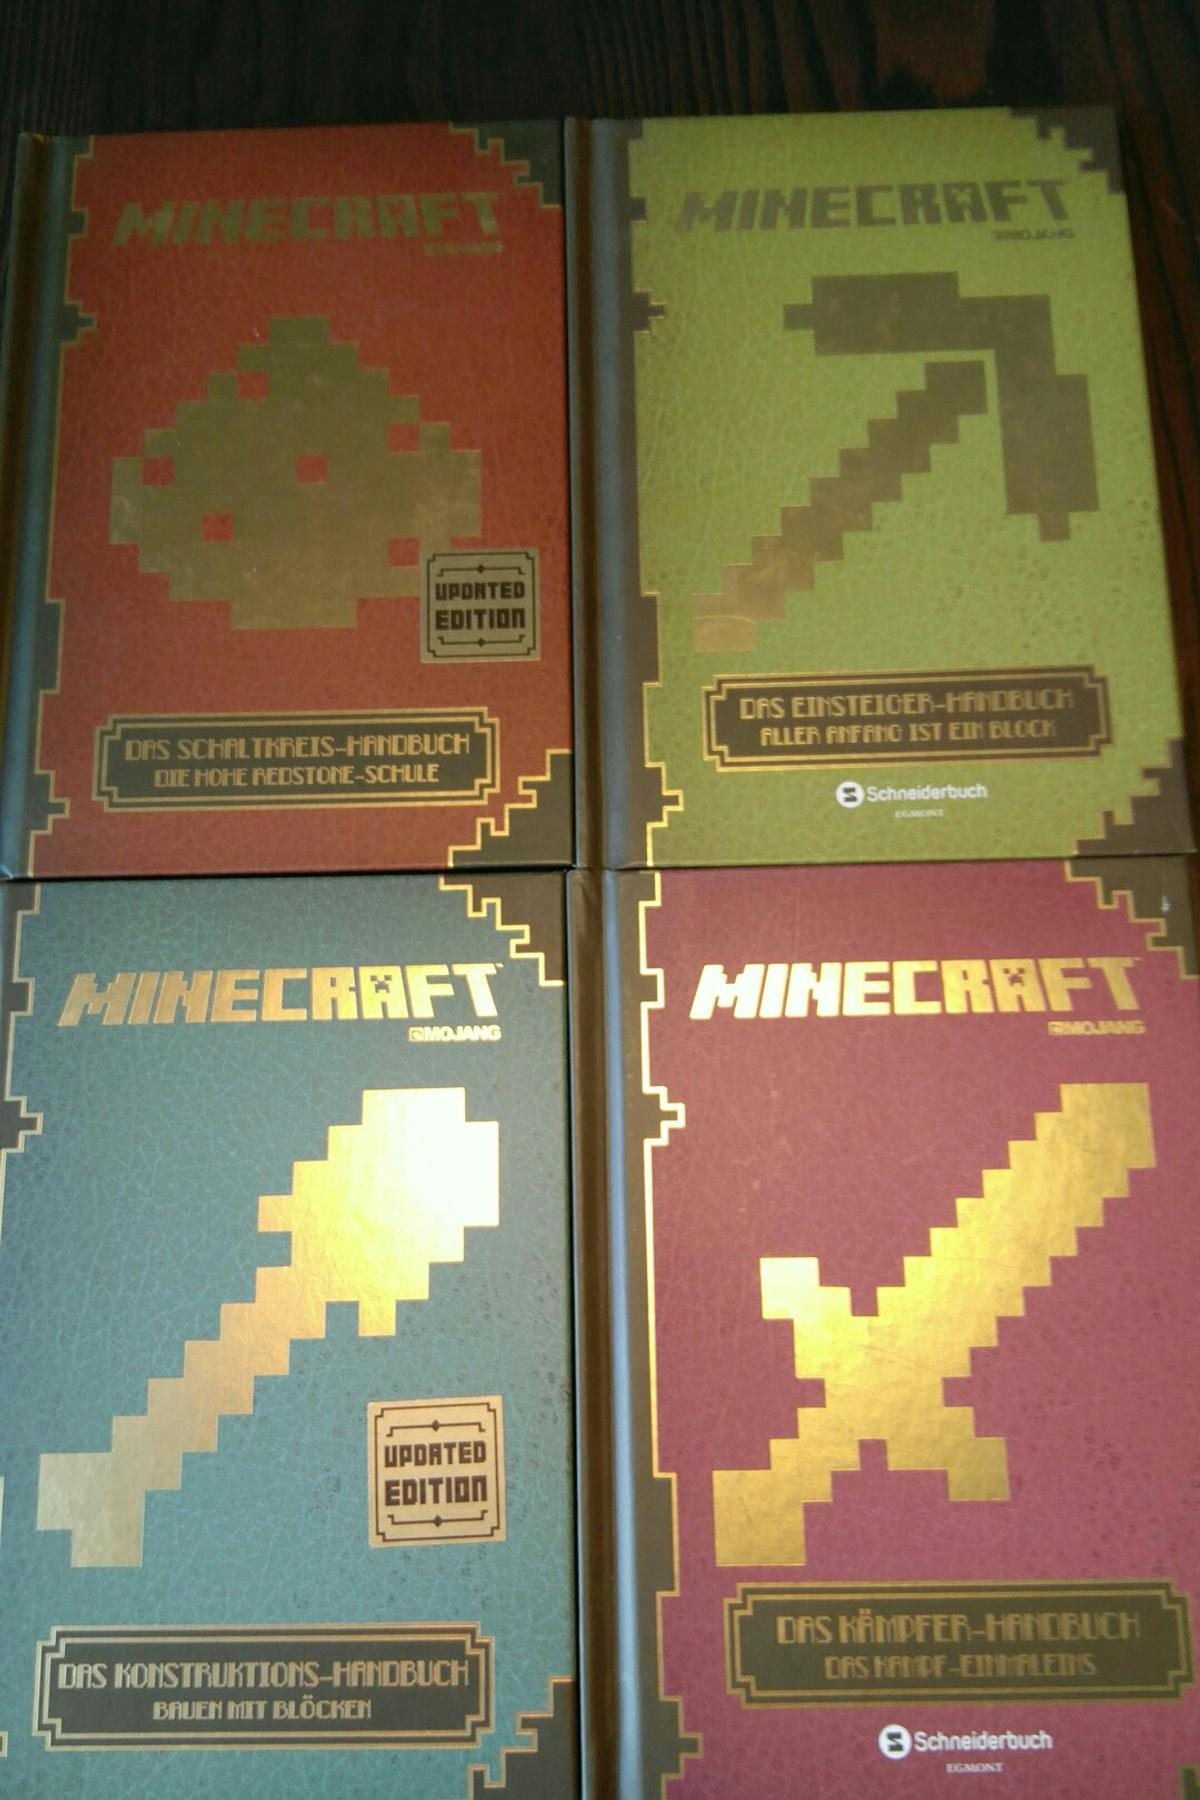 Mojang Minecraft Bucher Handbuch In 2340 Modling For 25 00 For Sale Shpock